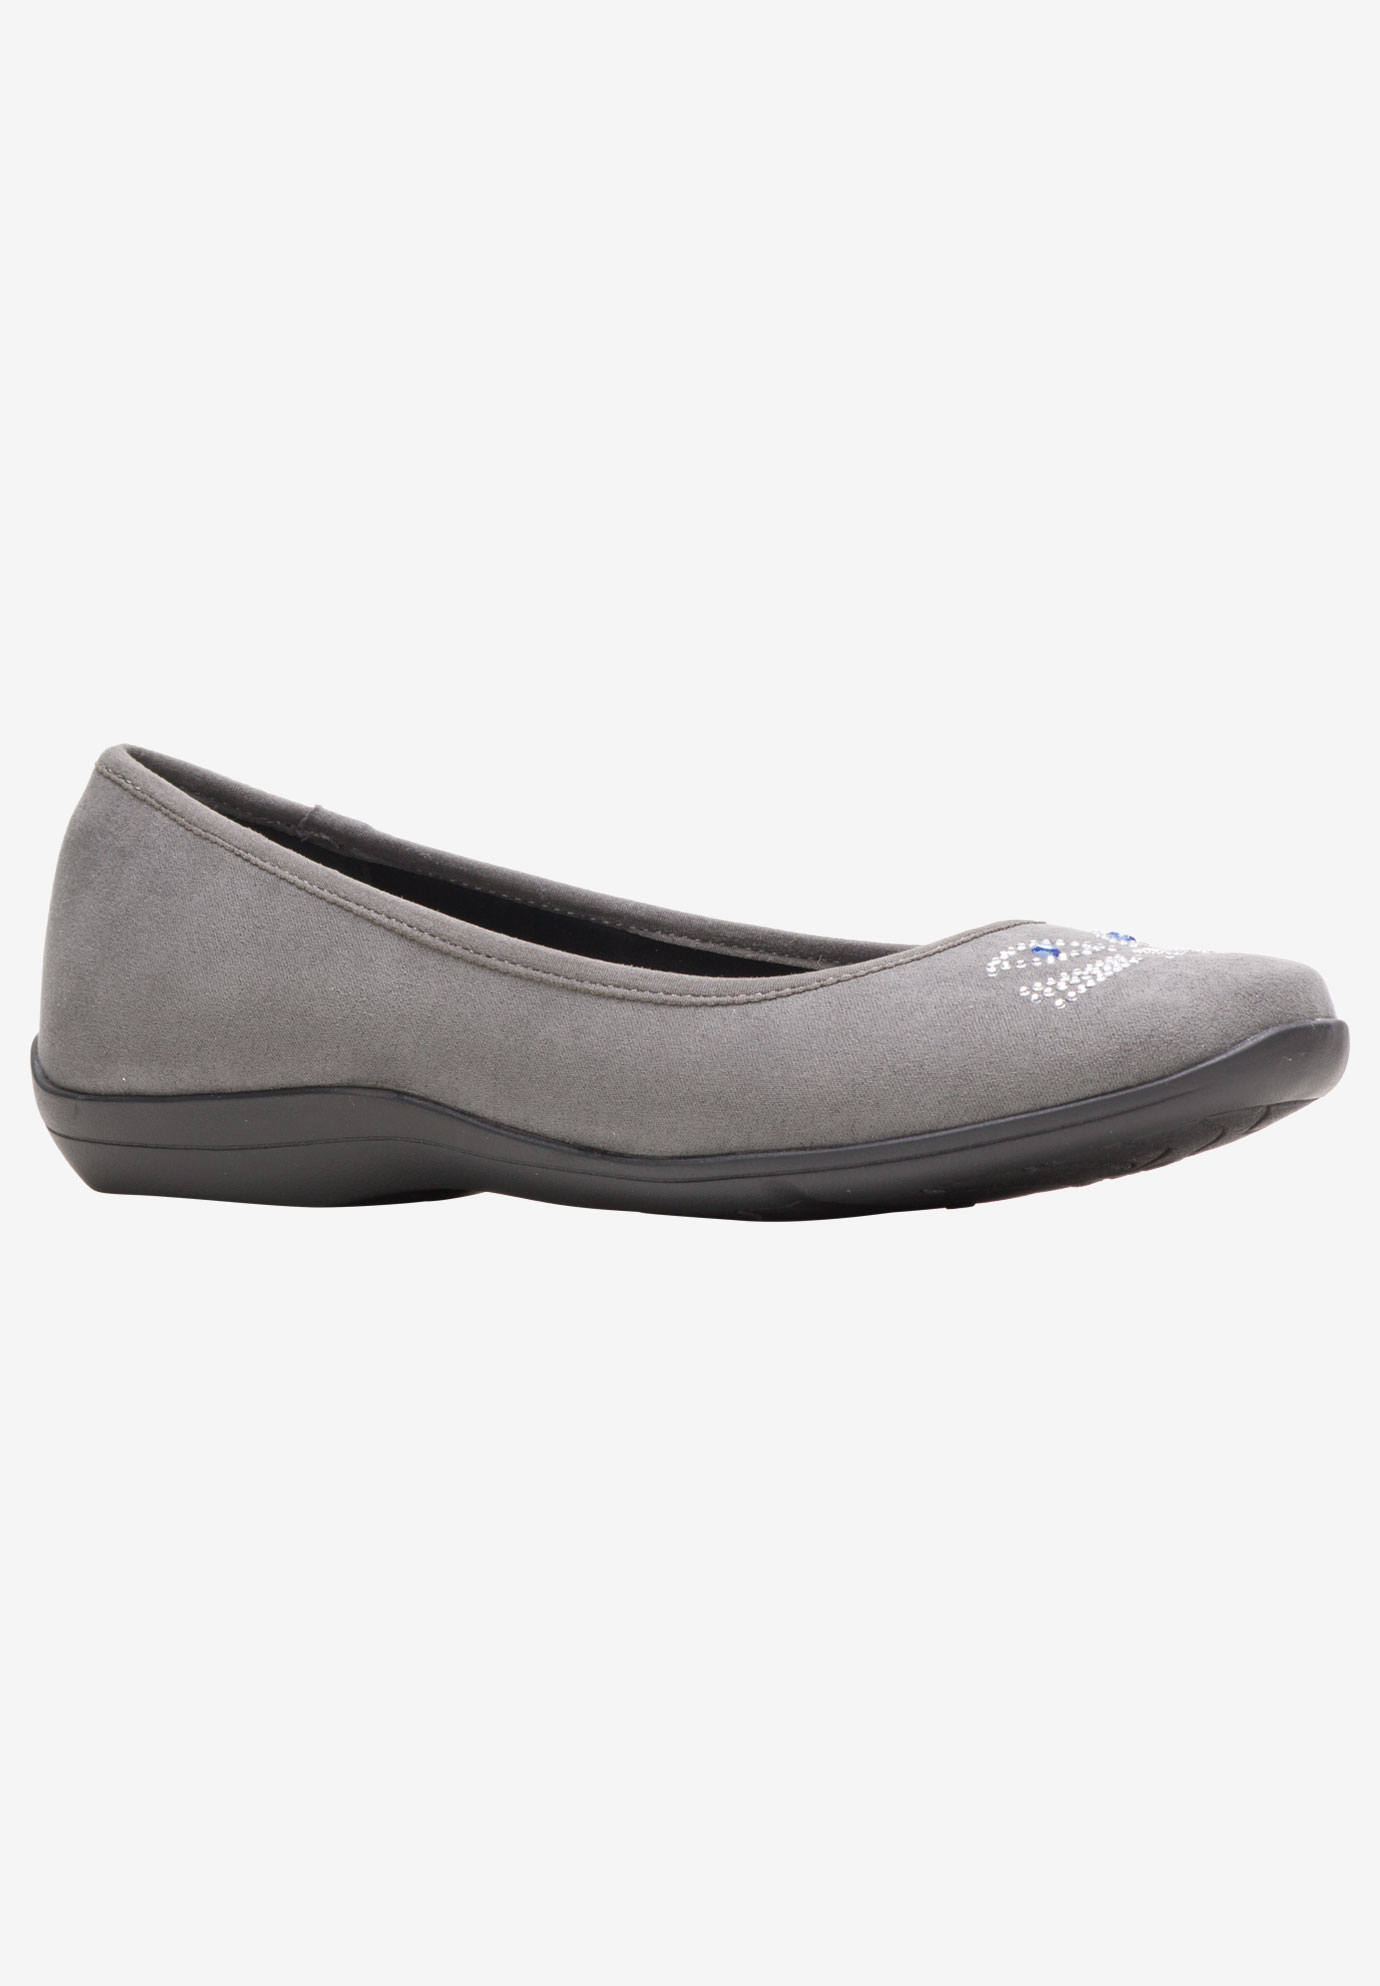 Kittycat Flats by Soft Style®,